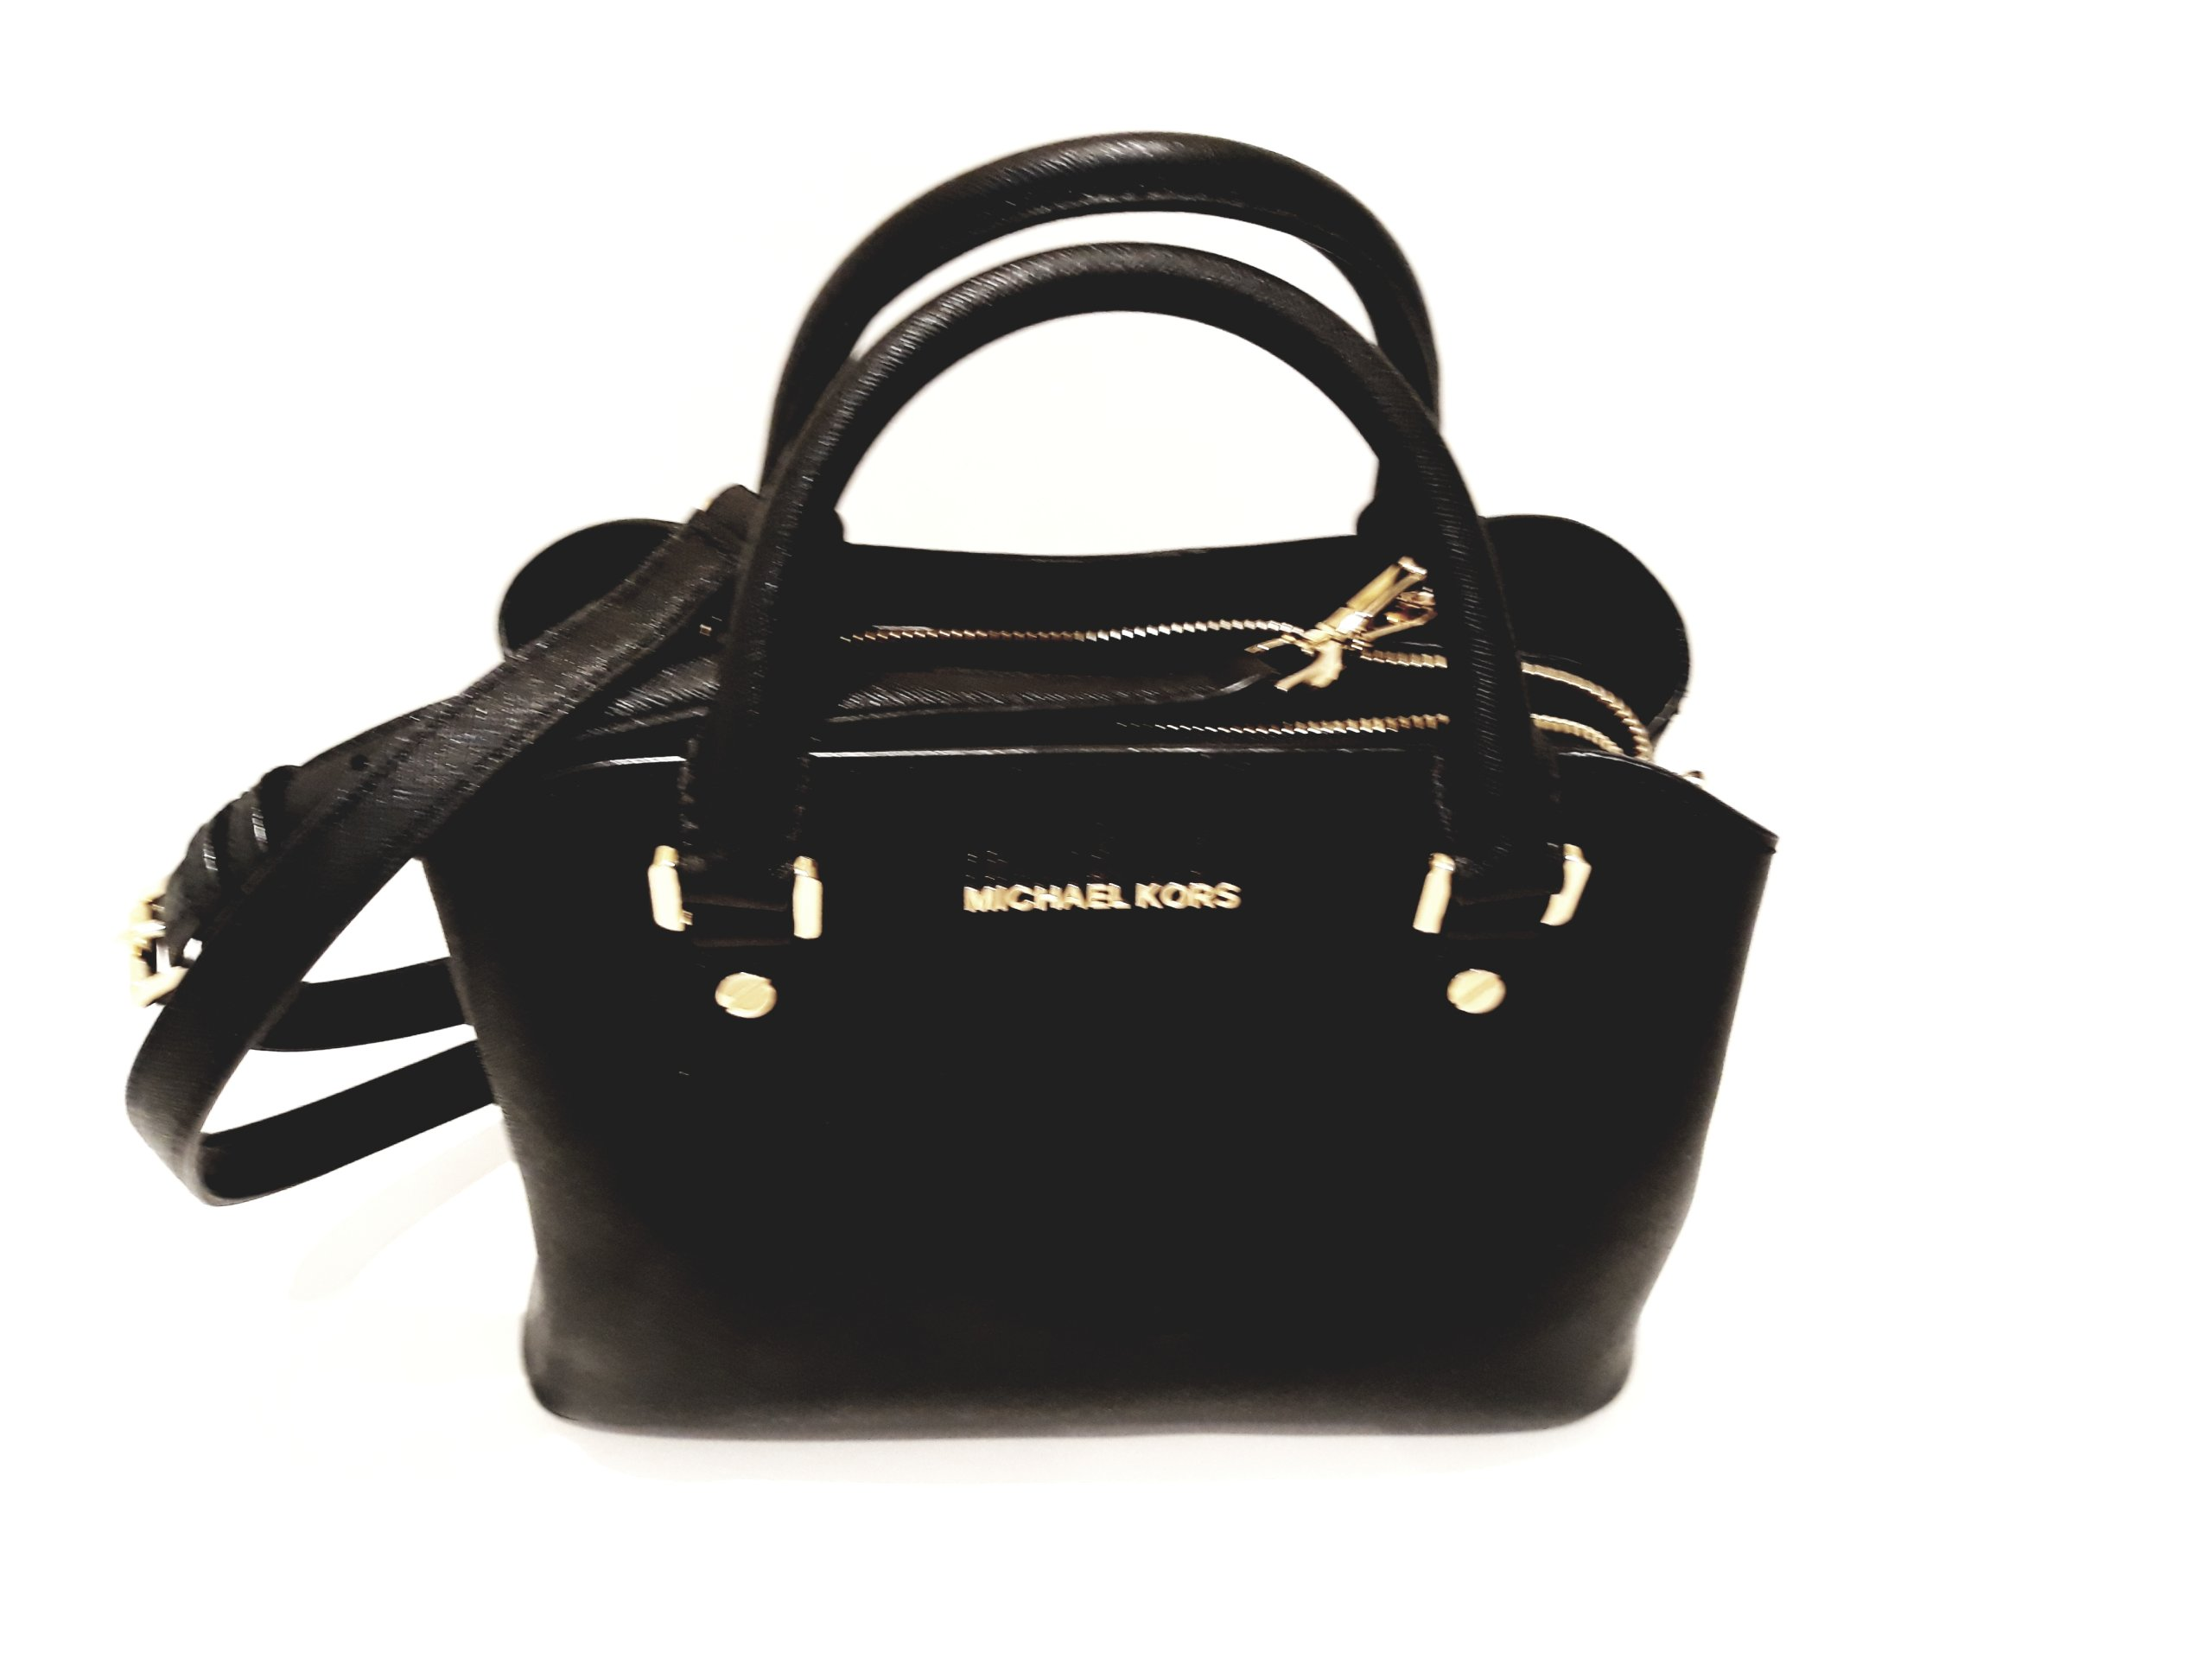 f299969d11764 Michael Kors torebka Savannah Small Setchel czarna - 7137420043 ...